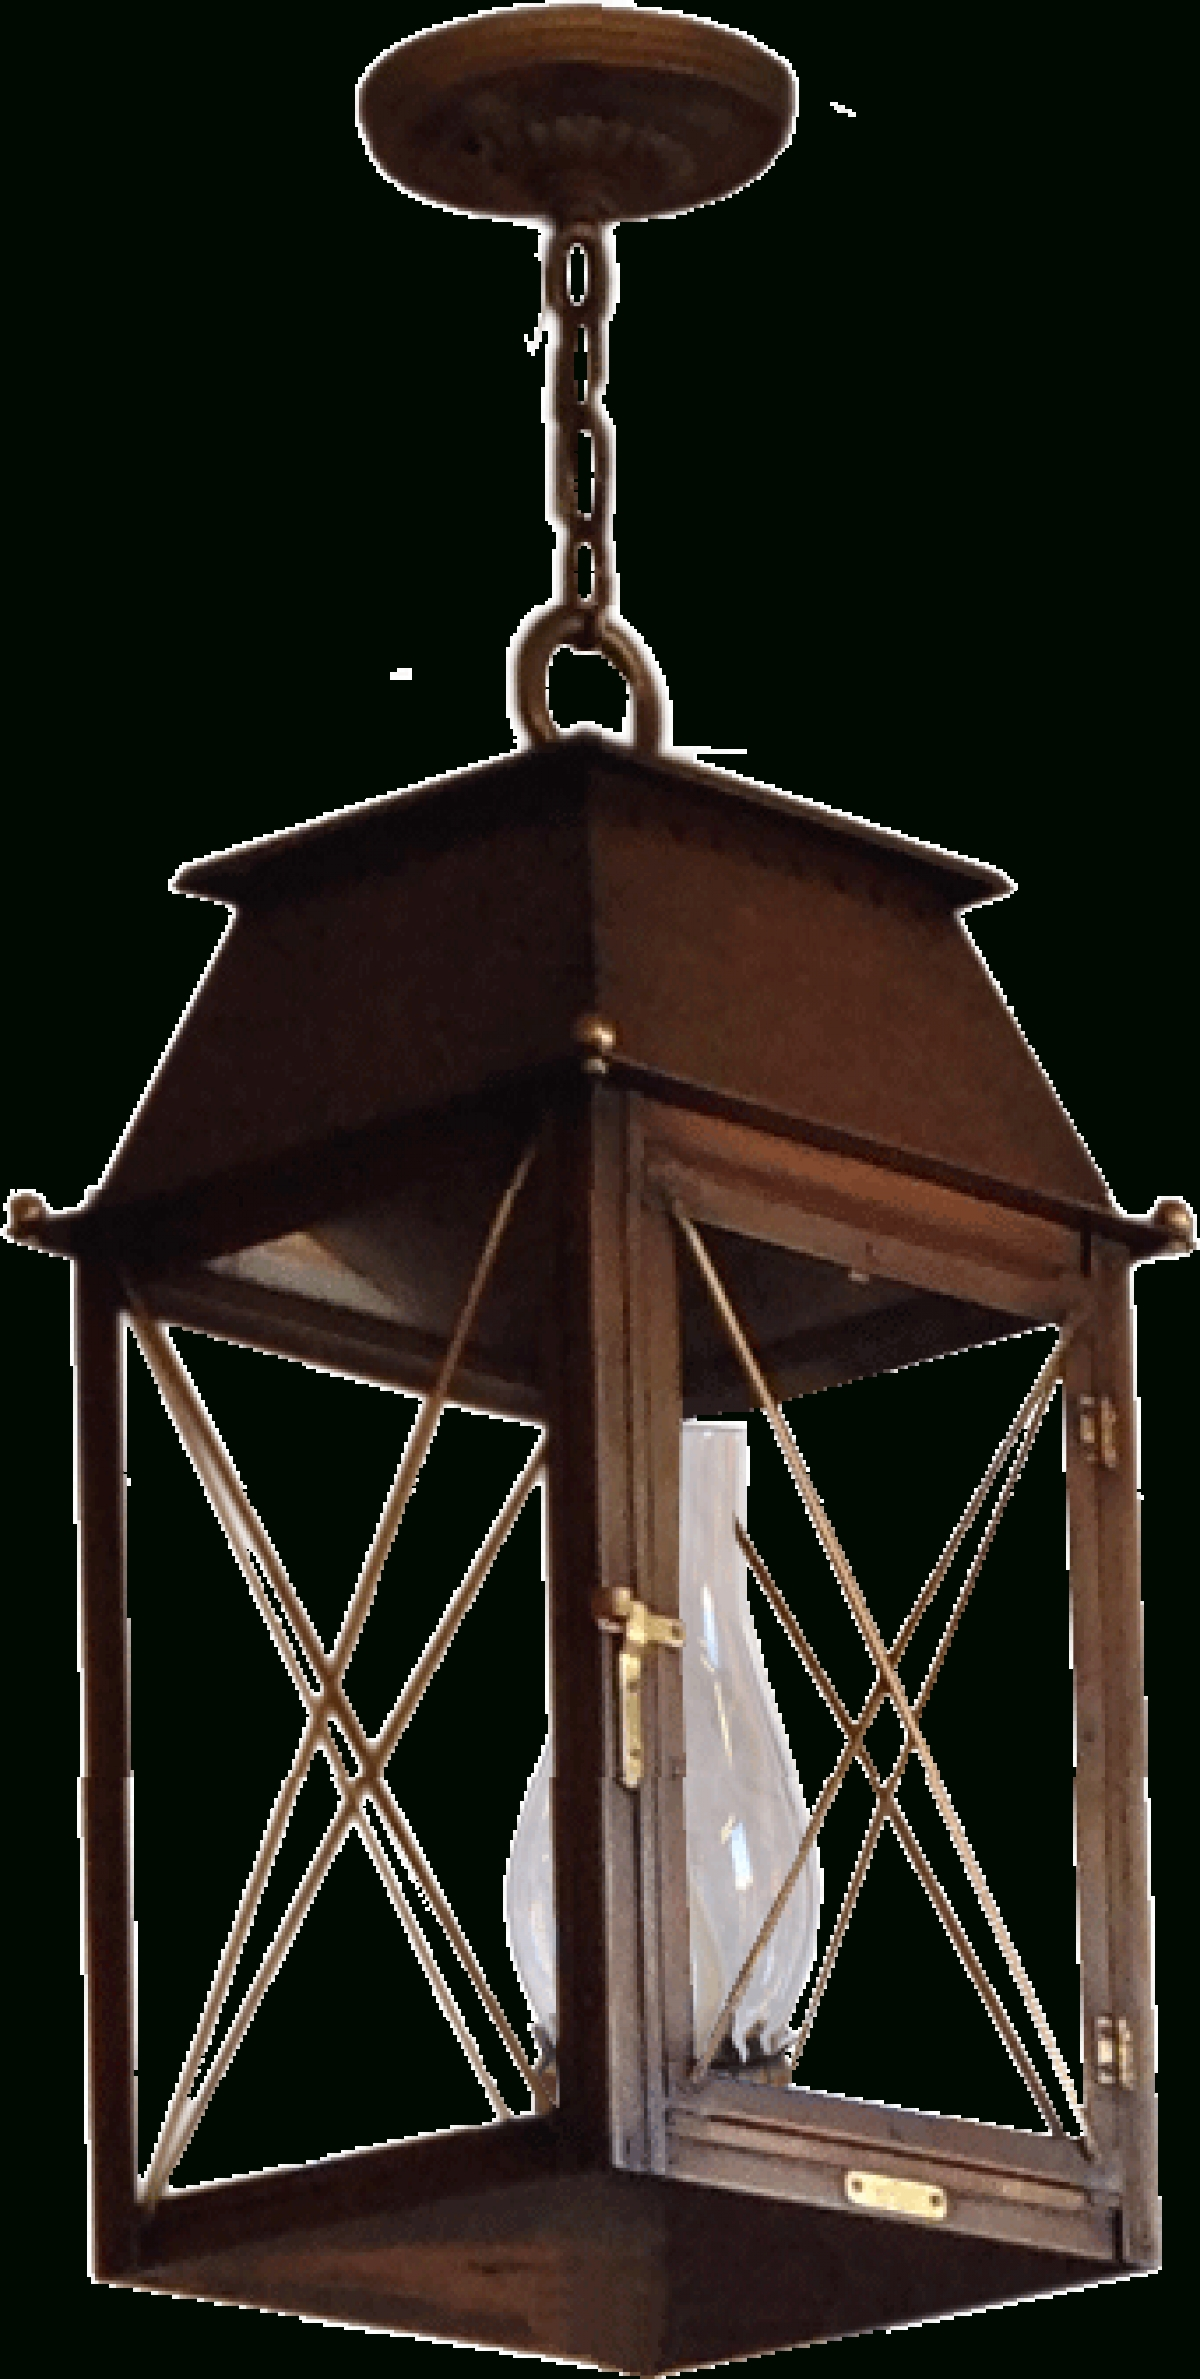 Furniture: Chic Coach House On Hanging Chainbevolo For Outdoor Throughout Outdoor Hanging Coach Lanterns (View 14 of 15)